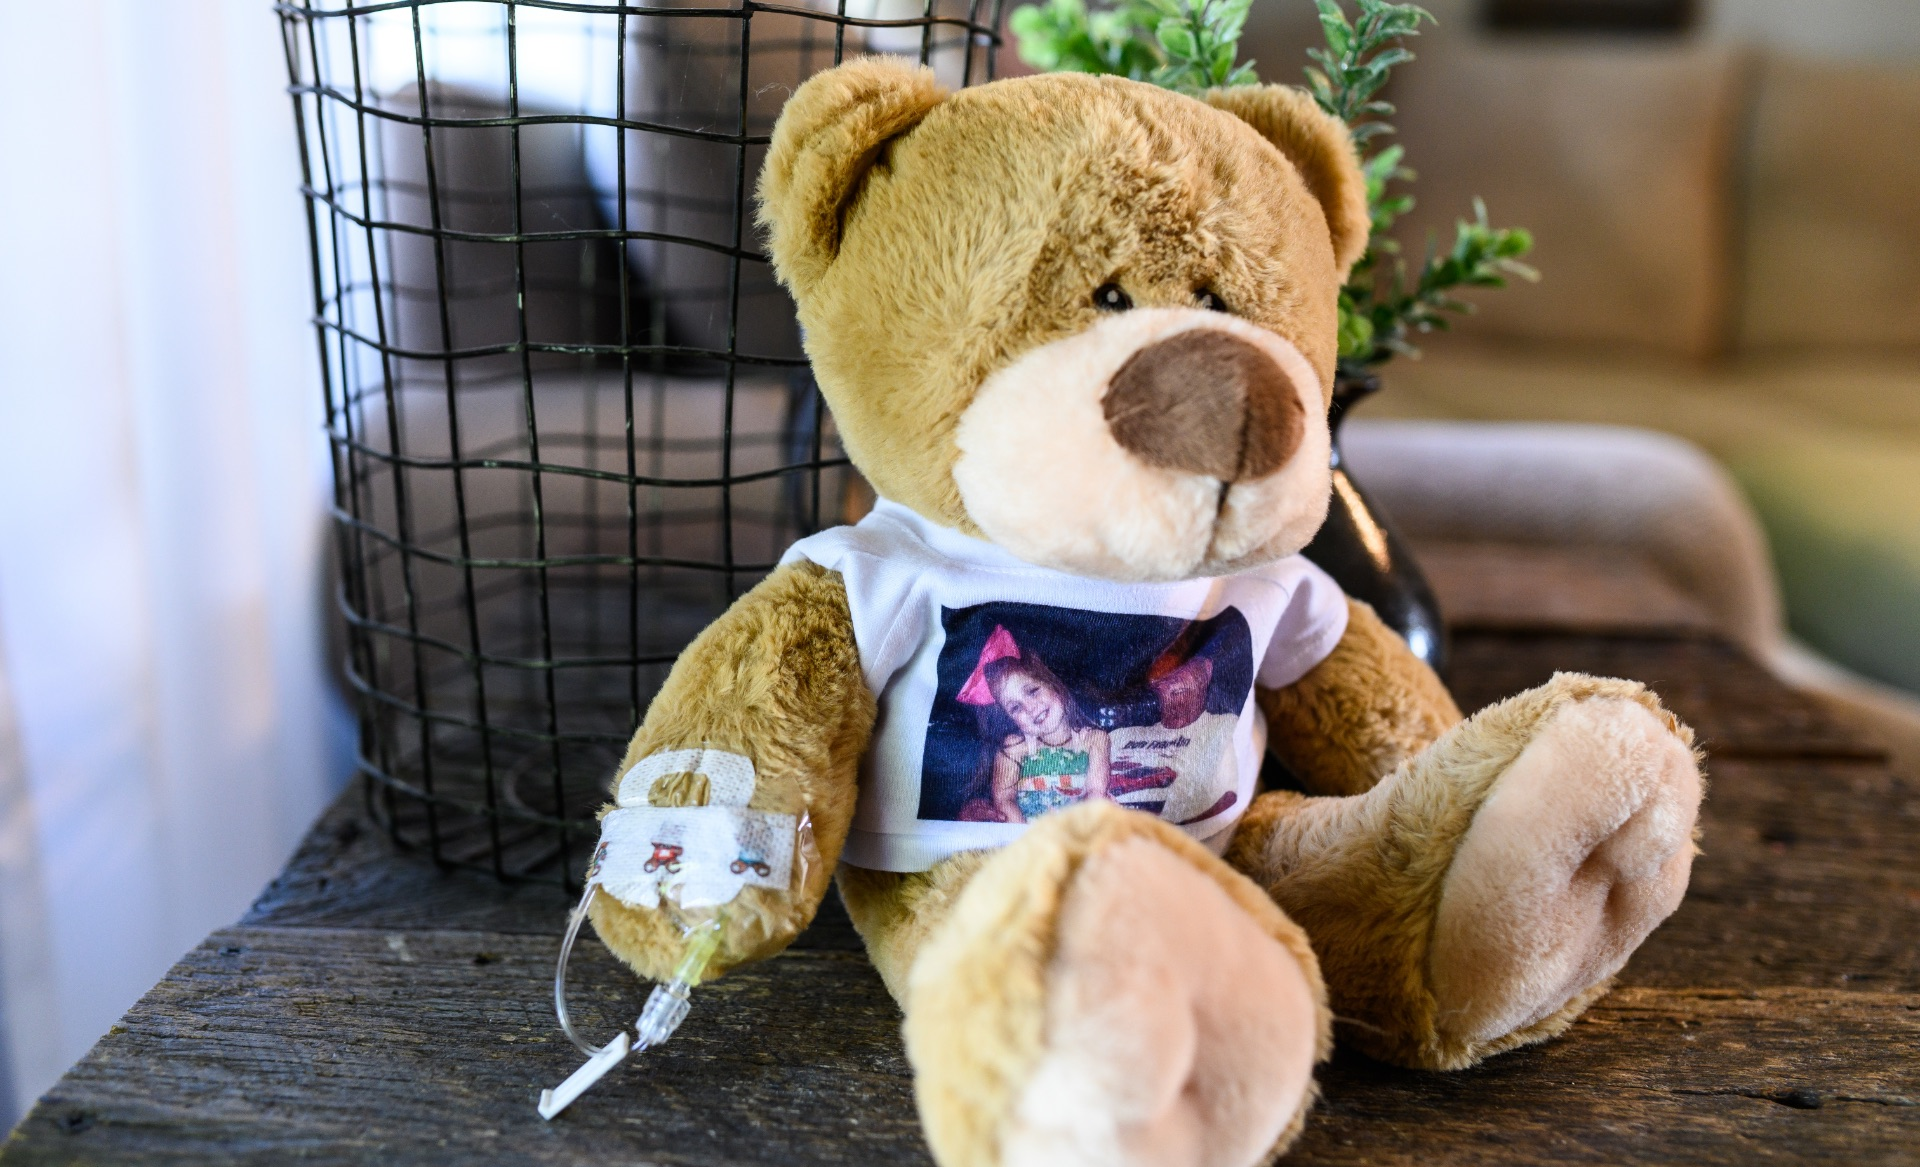 Henley's teddy bear Donnie, a brown stuffed bear wearing a white shirt with a picture of Henley and her grandfather printed on it. Donnie has an IV connected to one of his arms.